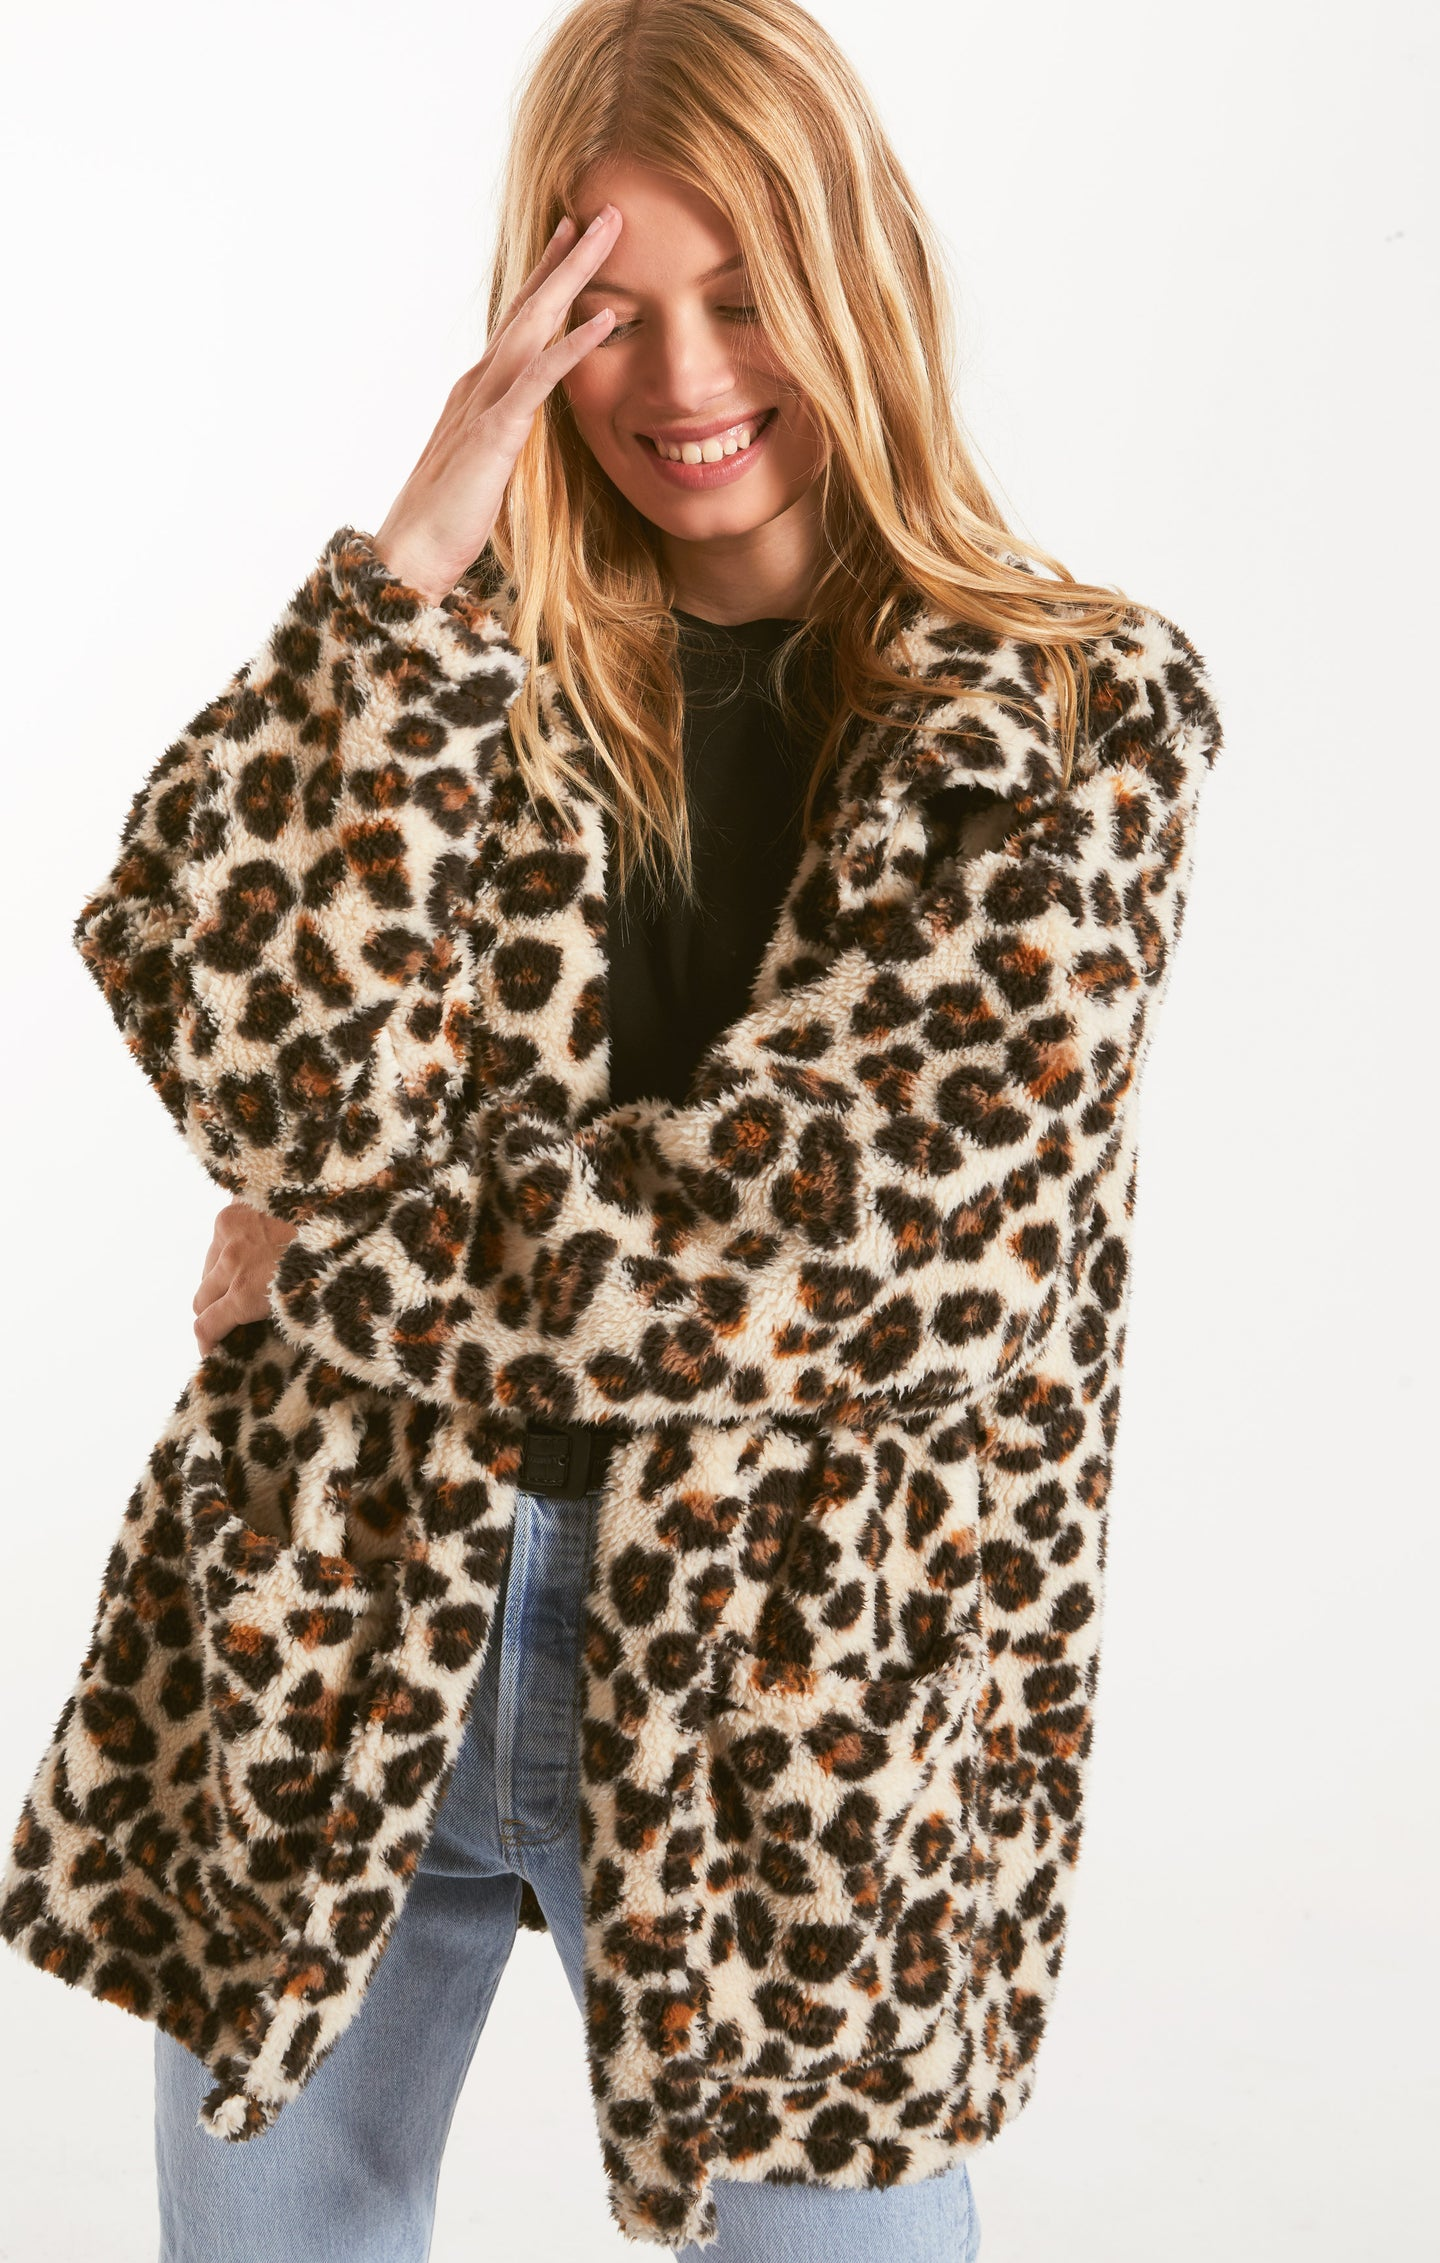 The Leopard Sherpa Teddy Bear Coat